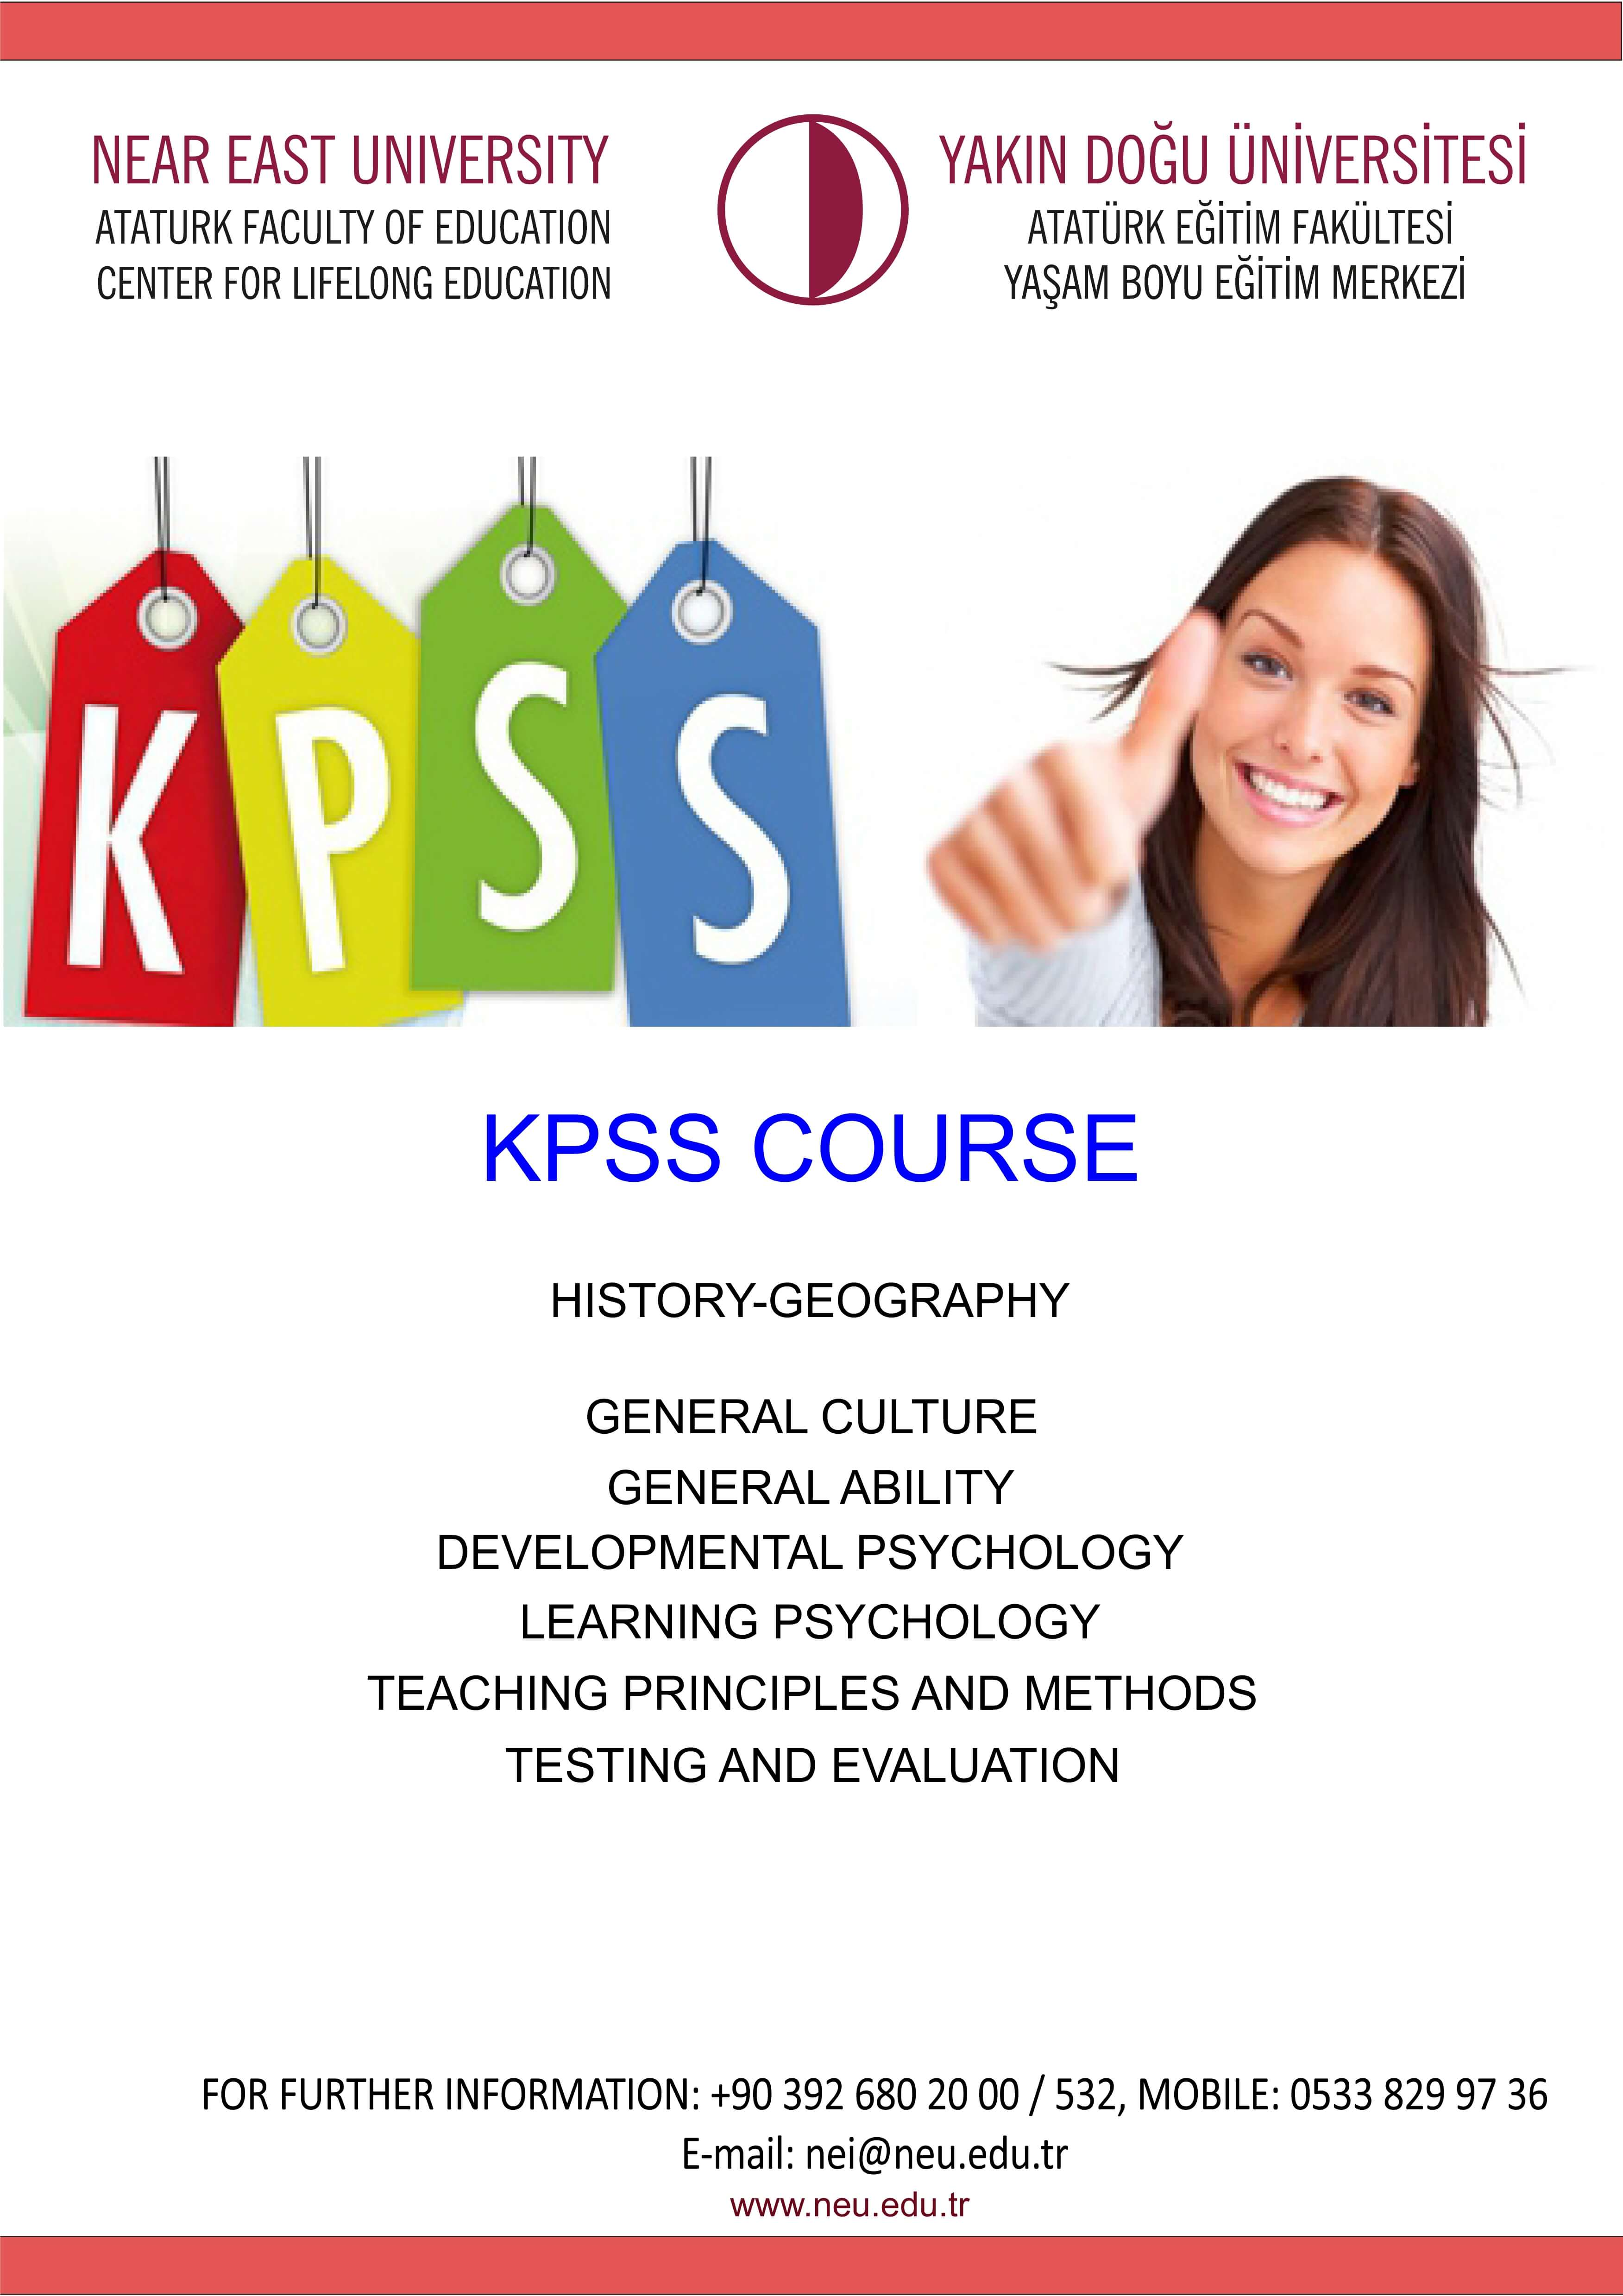 Near East University Lifelong Education Centre is running KPSS Courses to candidate civil servants